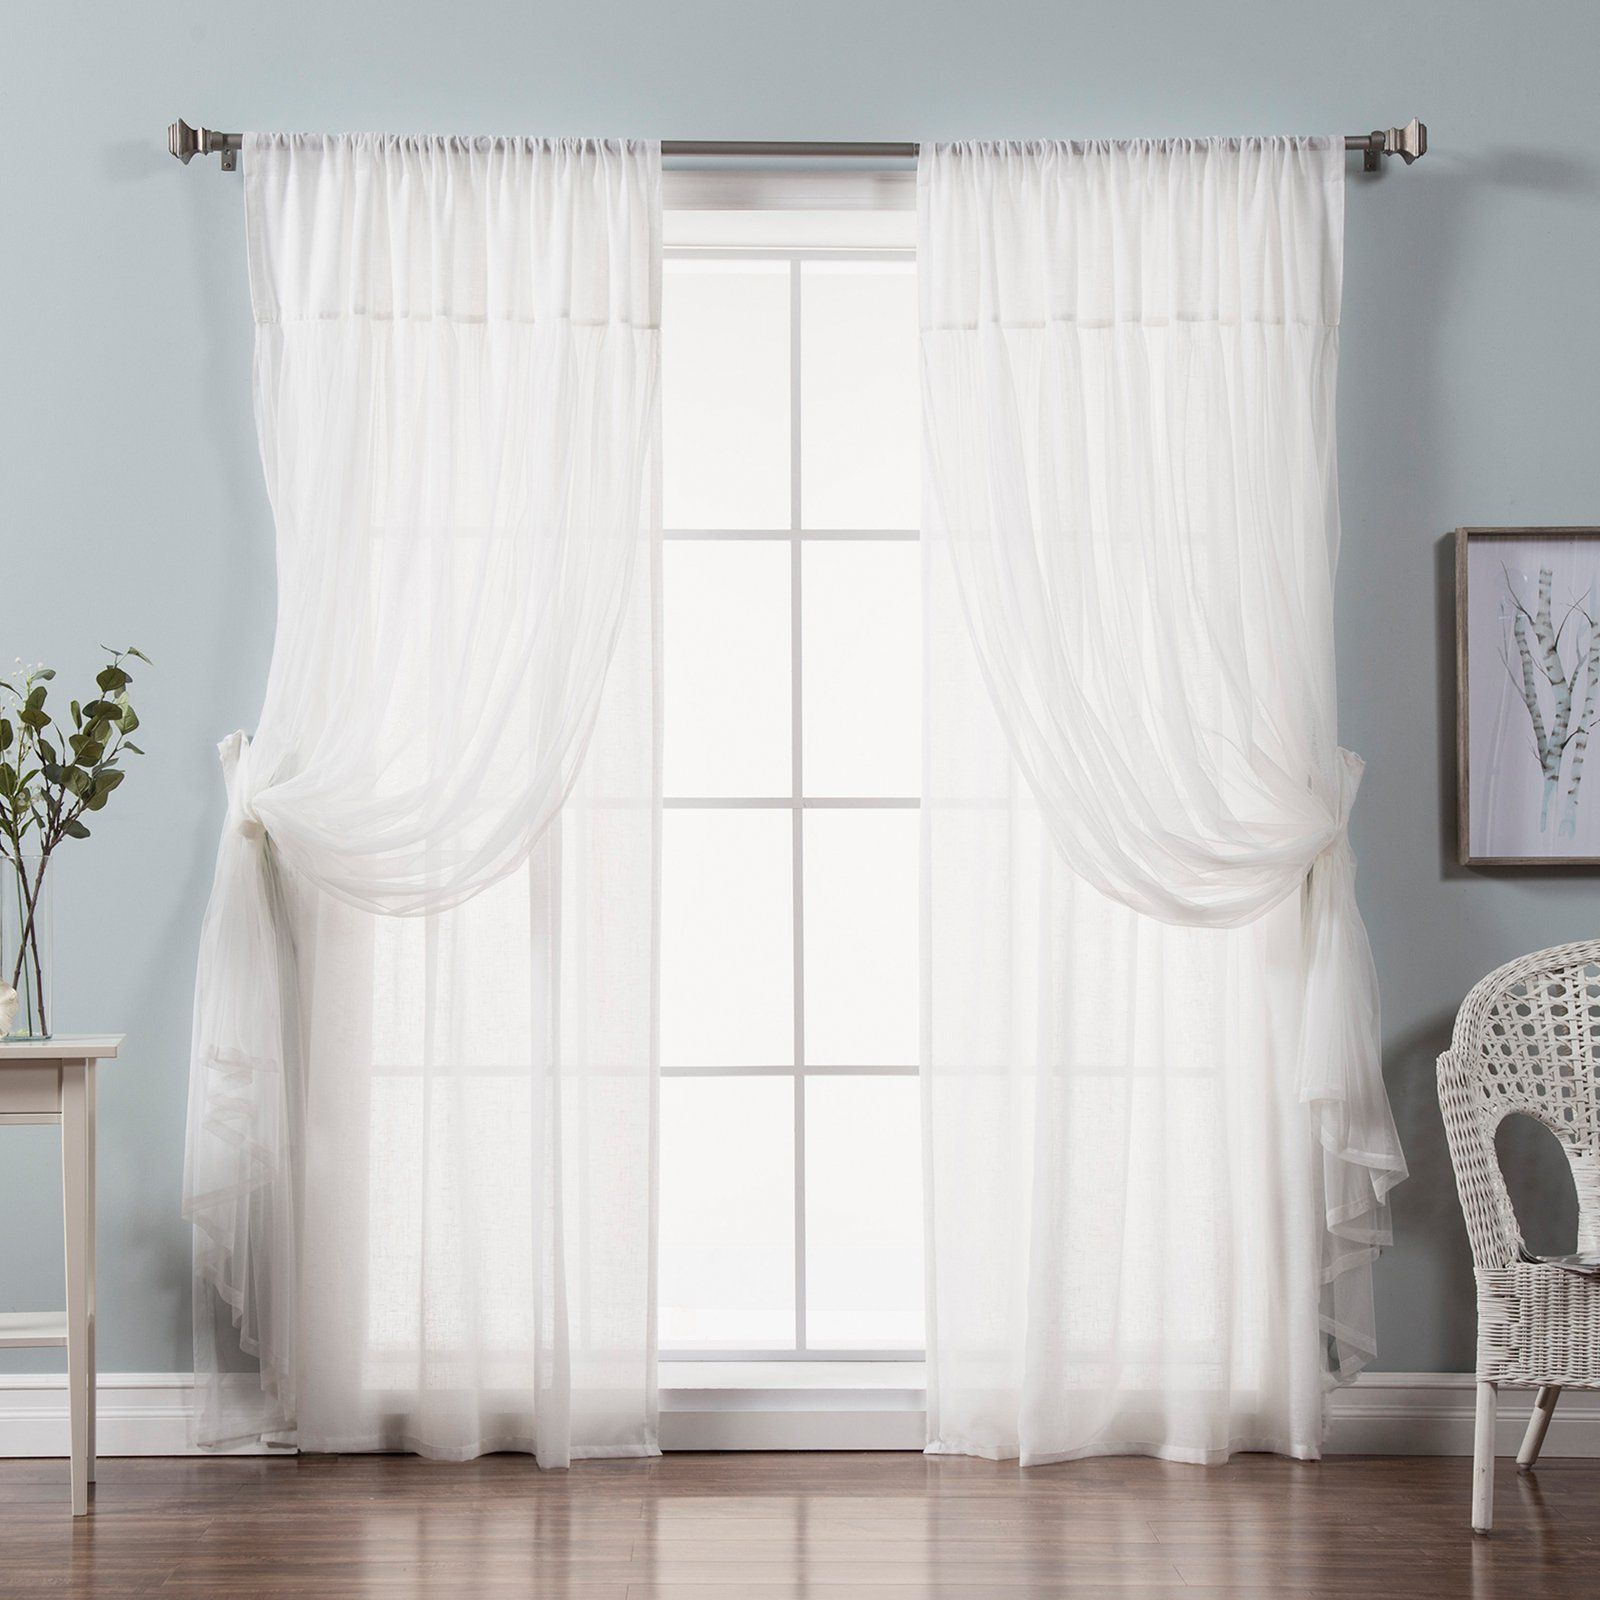 Best Home Fashion Faux Pippin Linen Sheer Curtain Panels Panel